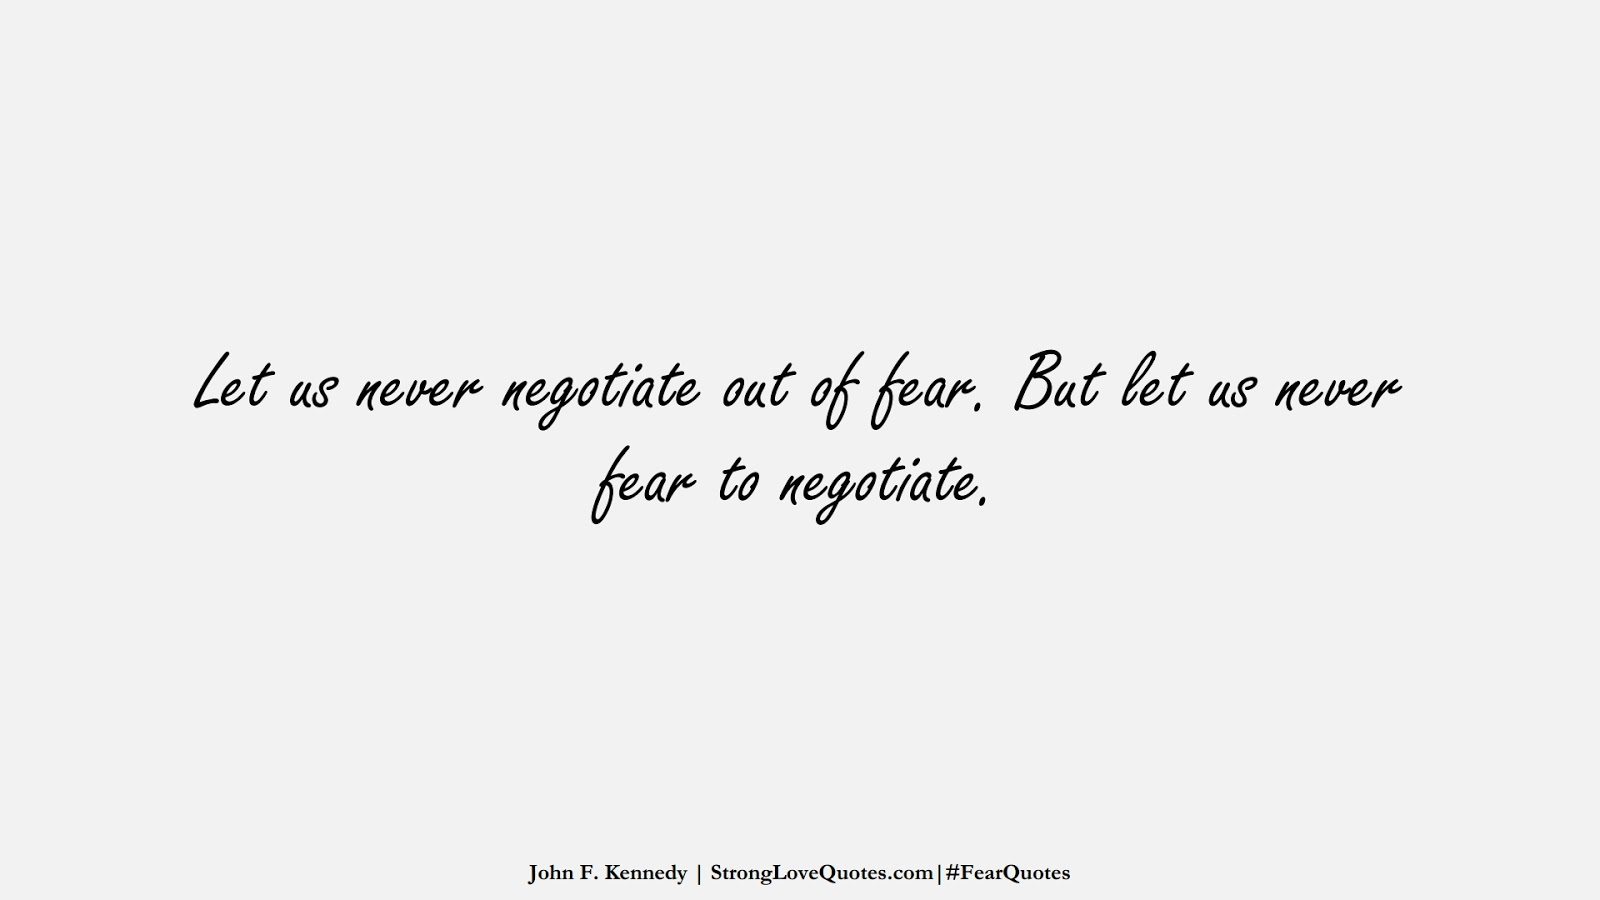 Let us never negotiate out of fear. But let us never fear to negotiate. (John F. Kennedy);  #FearQuotes